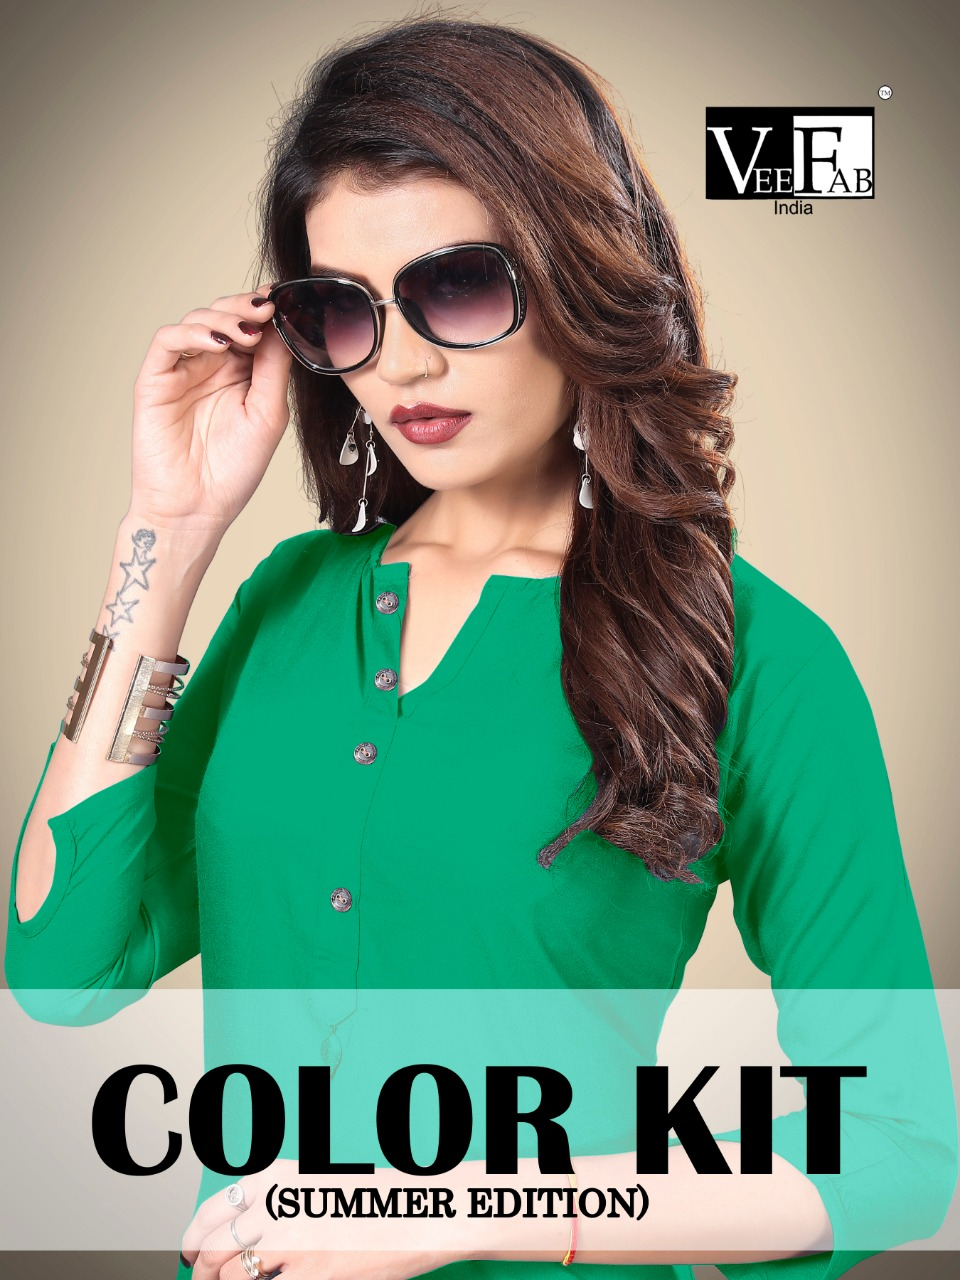 Vee fab colour kit fancy casual wear kurties with plazzo collection